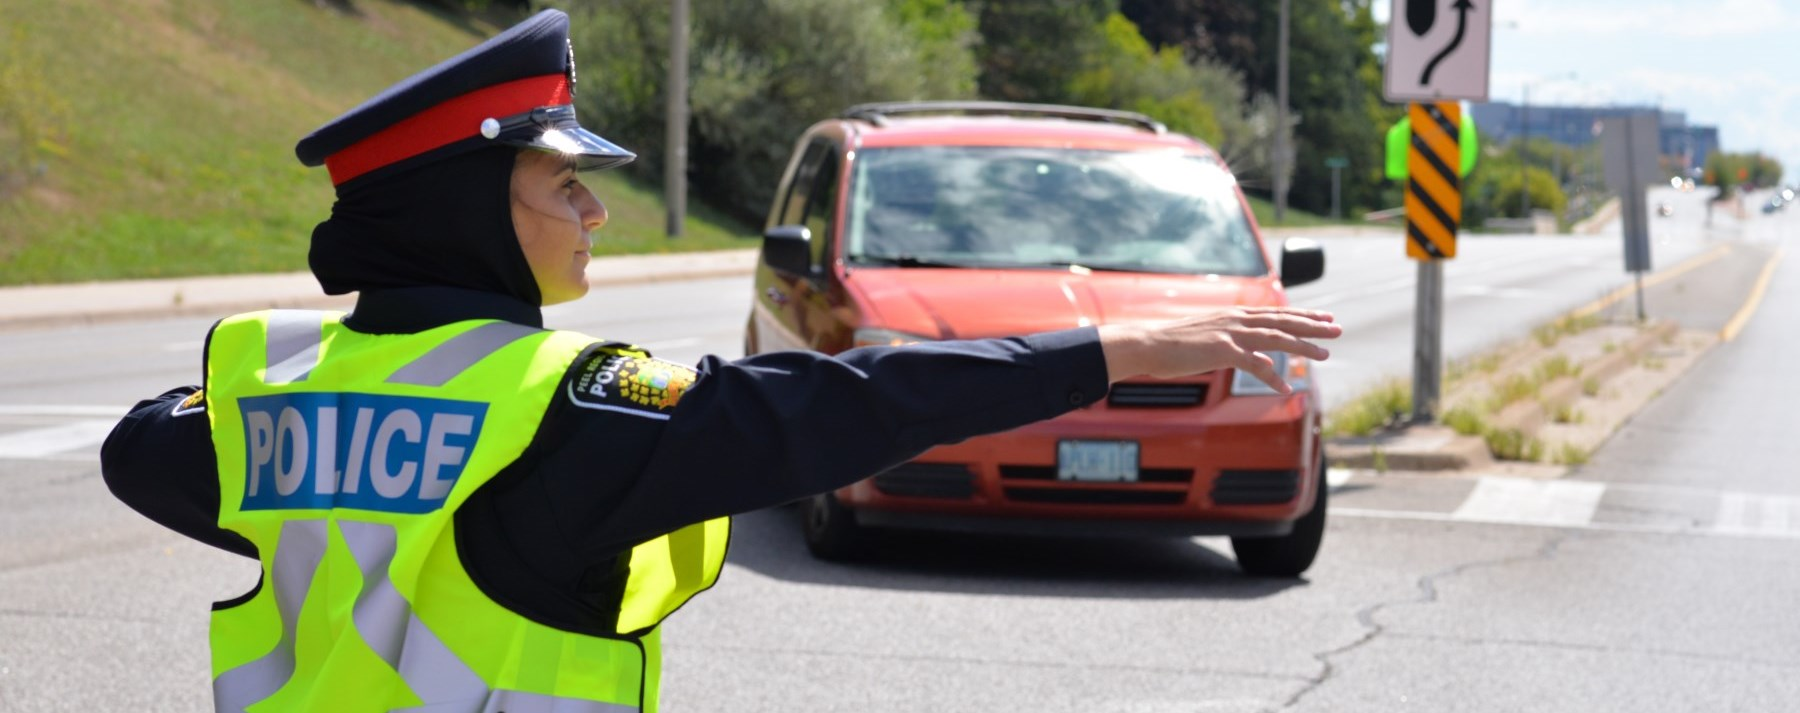 female officer directing traffic